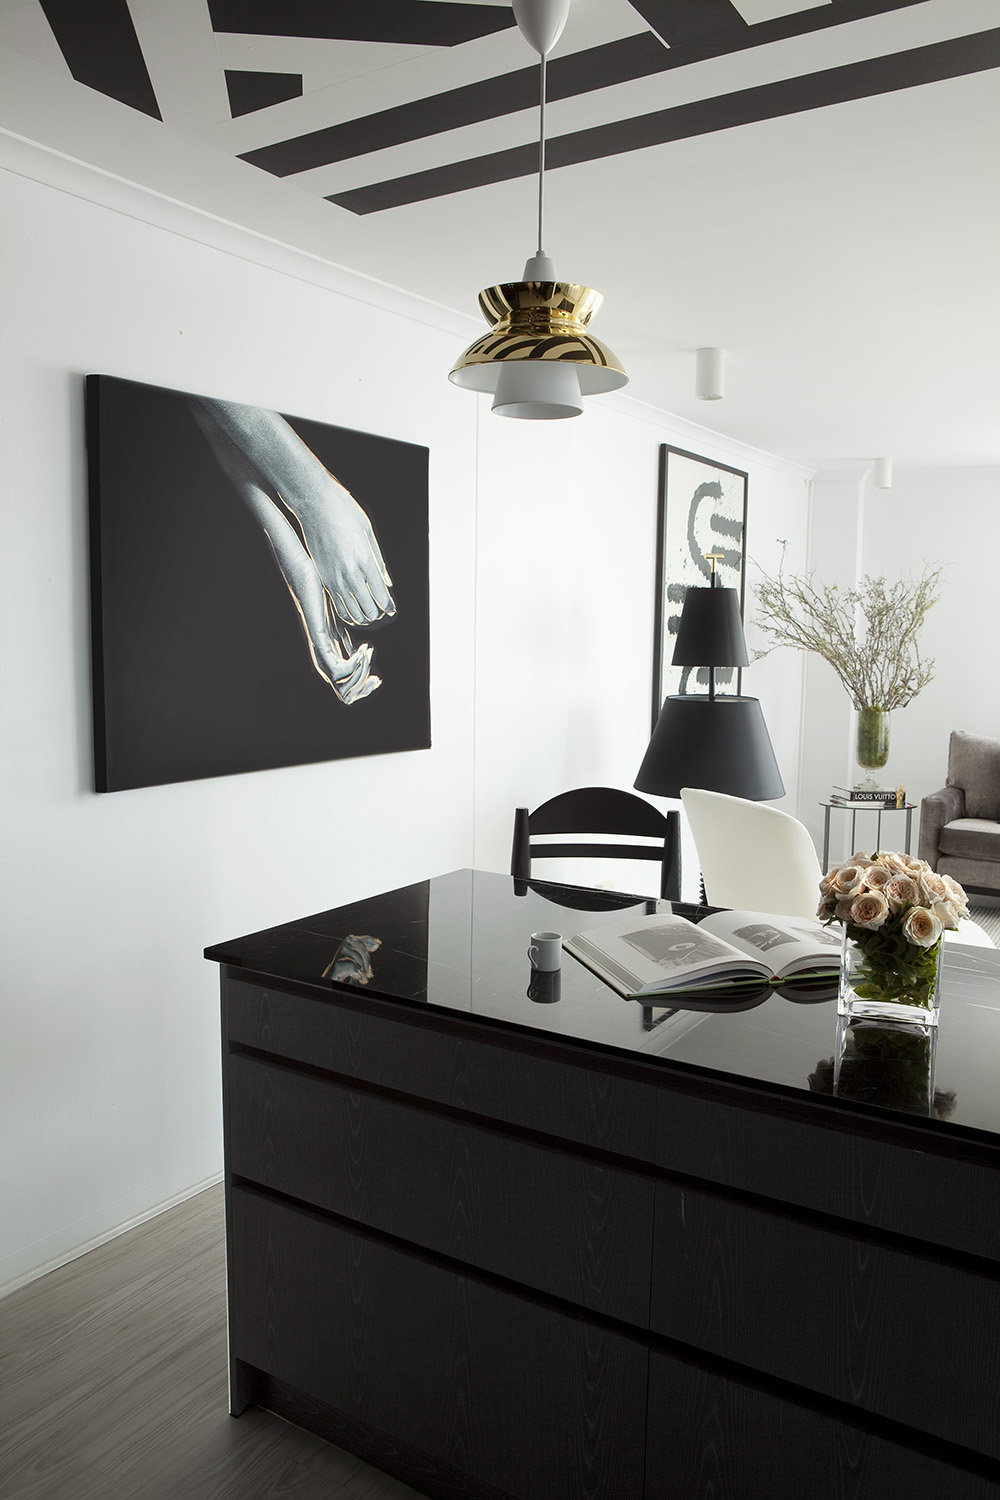 Brisbane Apartment by James Dawson